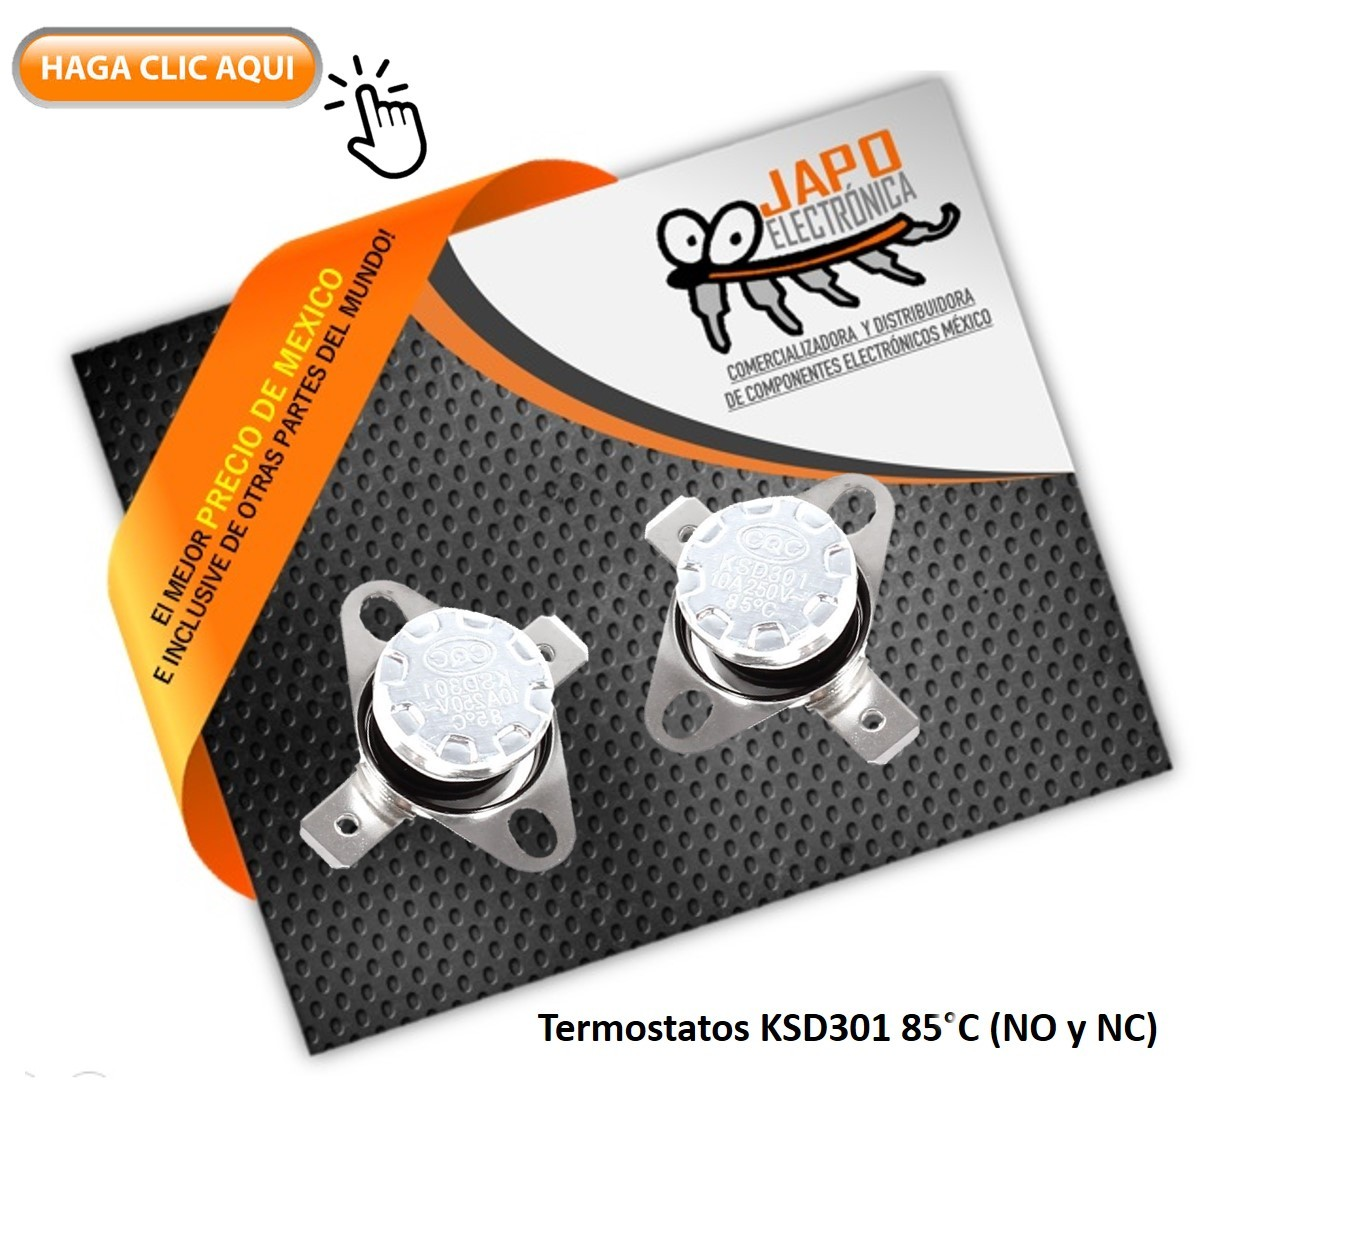 Termostatos KSD301 85°C 250V 10A (NO y NC)